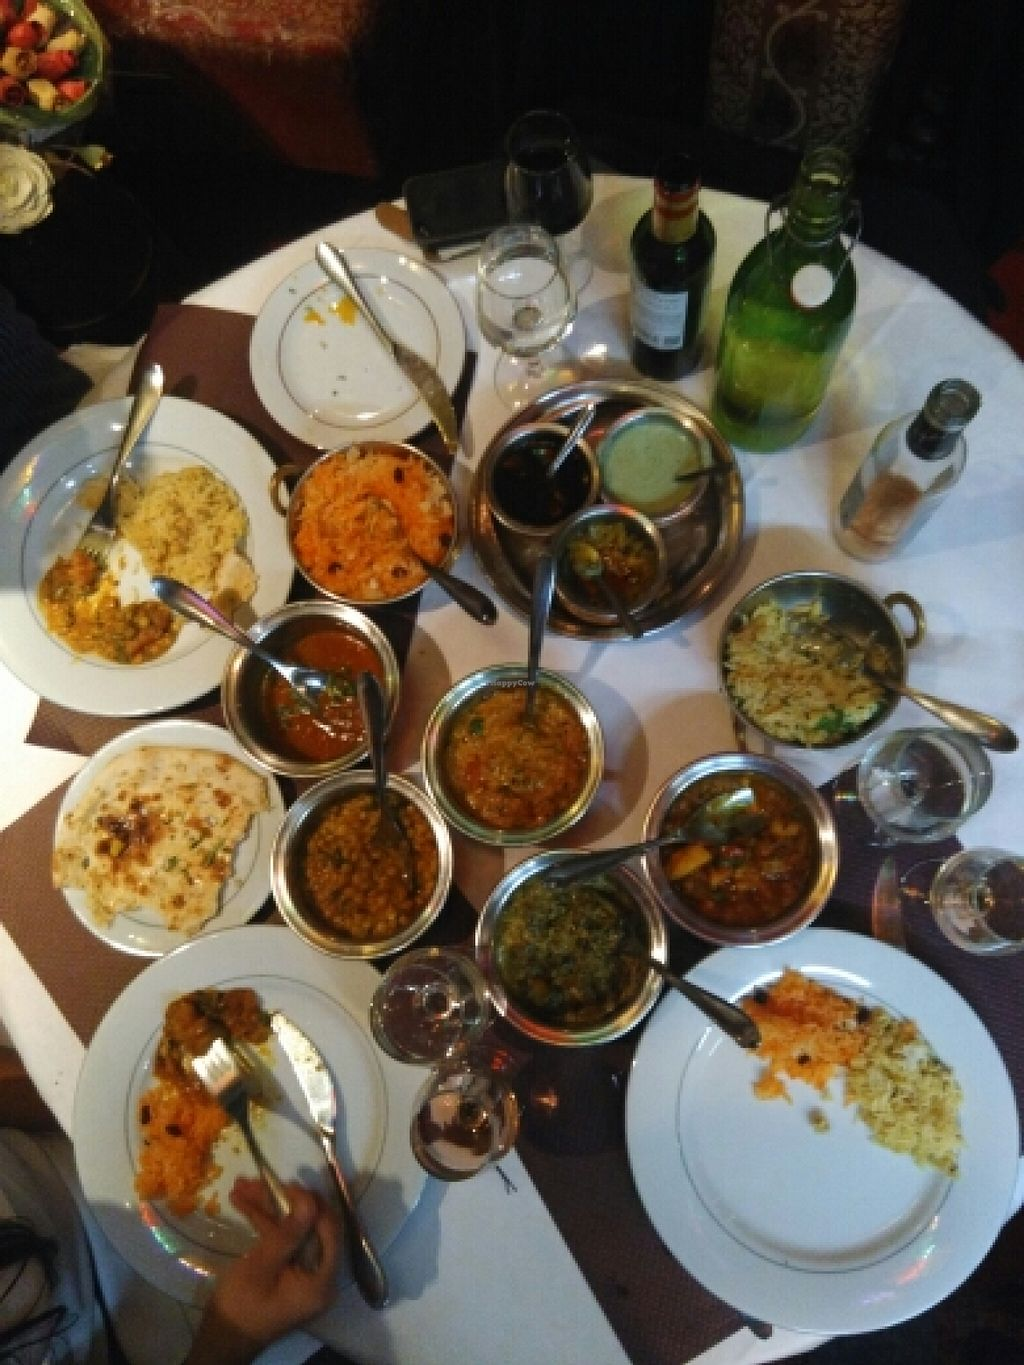 """Photo of Le Rajwal  by <a href=""""/members/profile/Flavie"""">Flavie</a> <br/>4 vegan curry choices and tow kind of rices  <br/> January 6, 2016  - <a href='/contact/abuse/image/41721/131325'>Report</a>"""